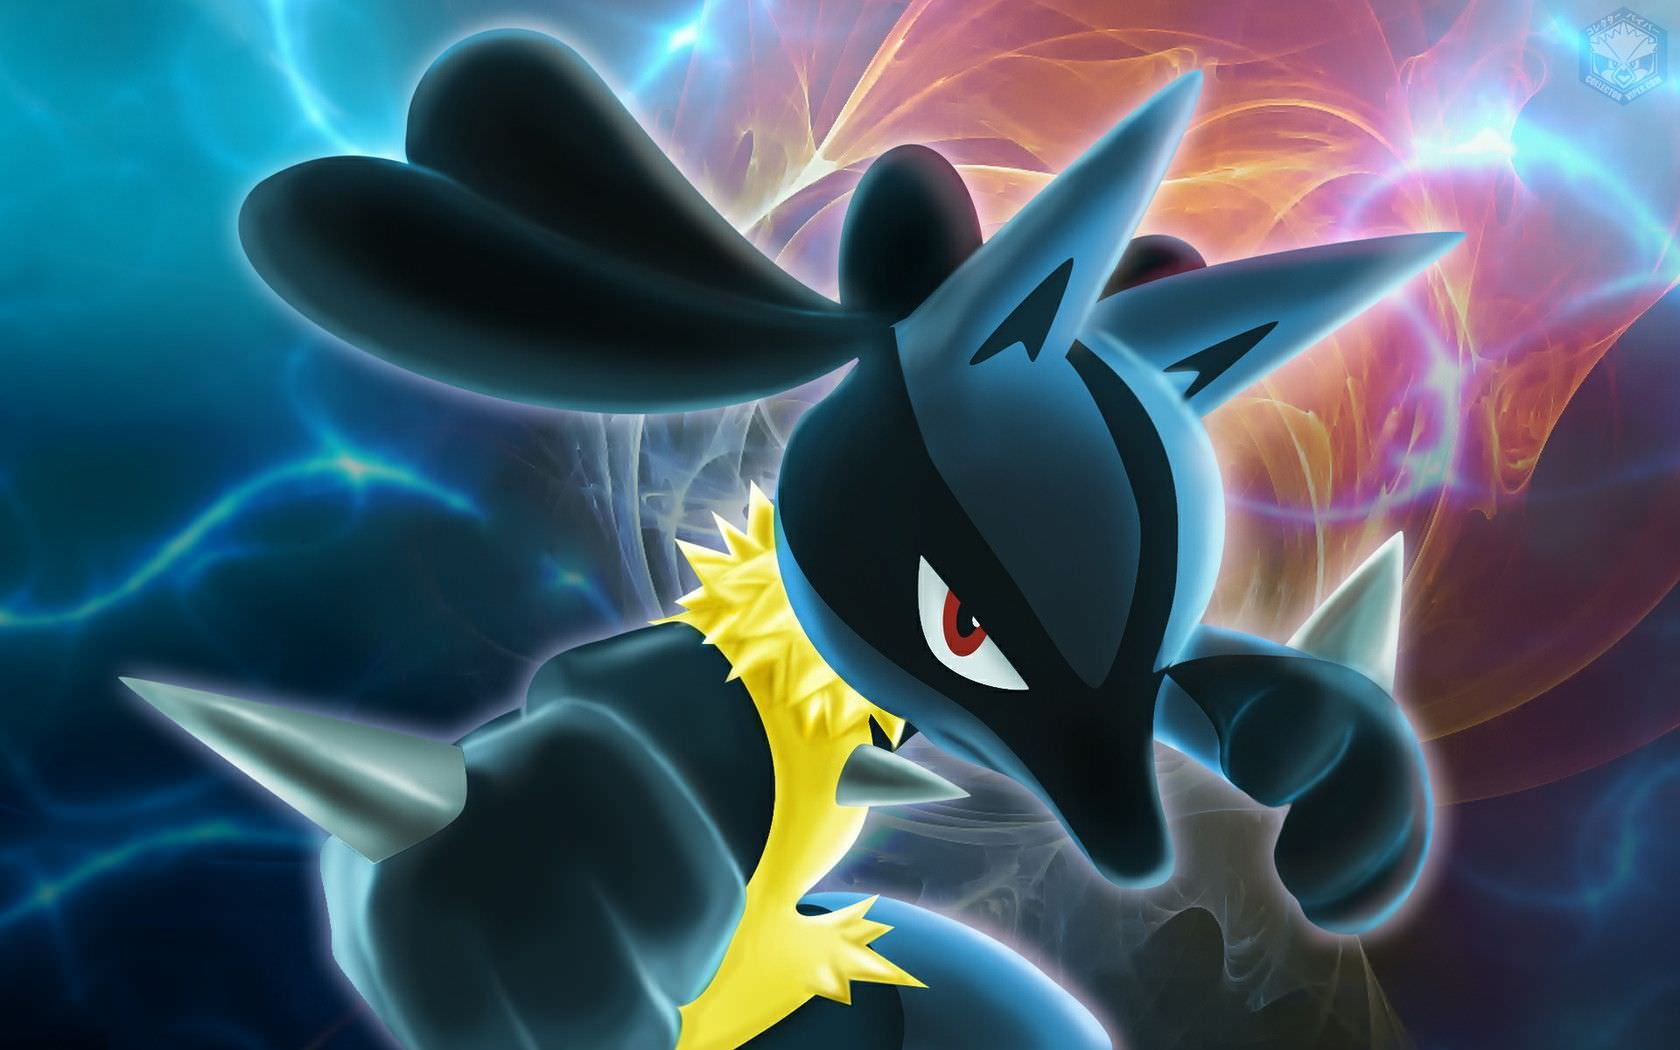 lucario wallpaper images (15) | HD Wallpapers Buzz